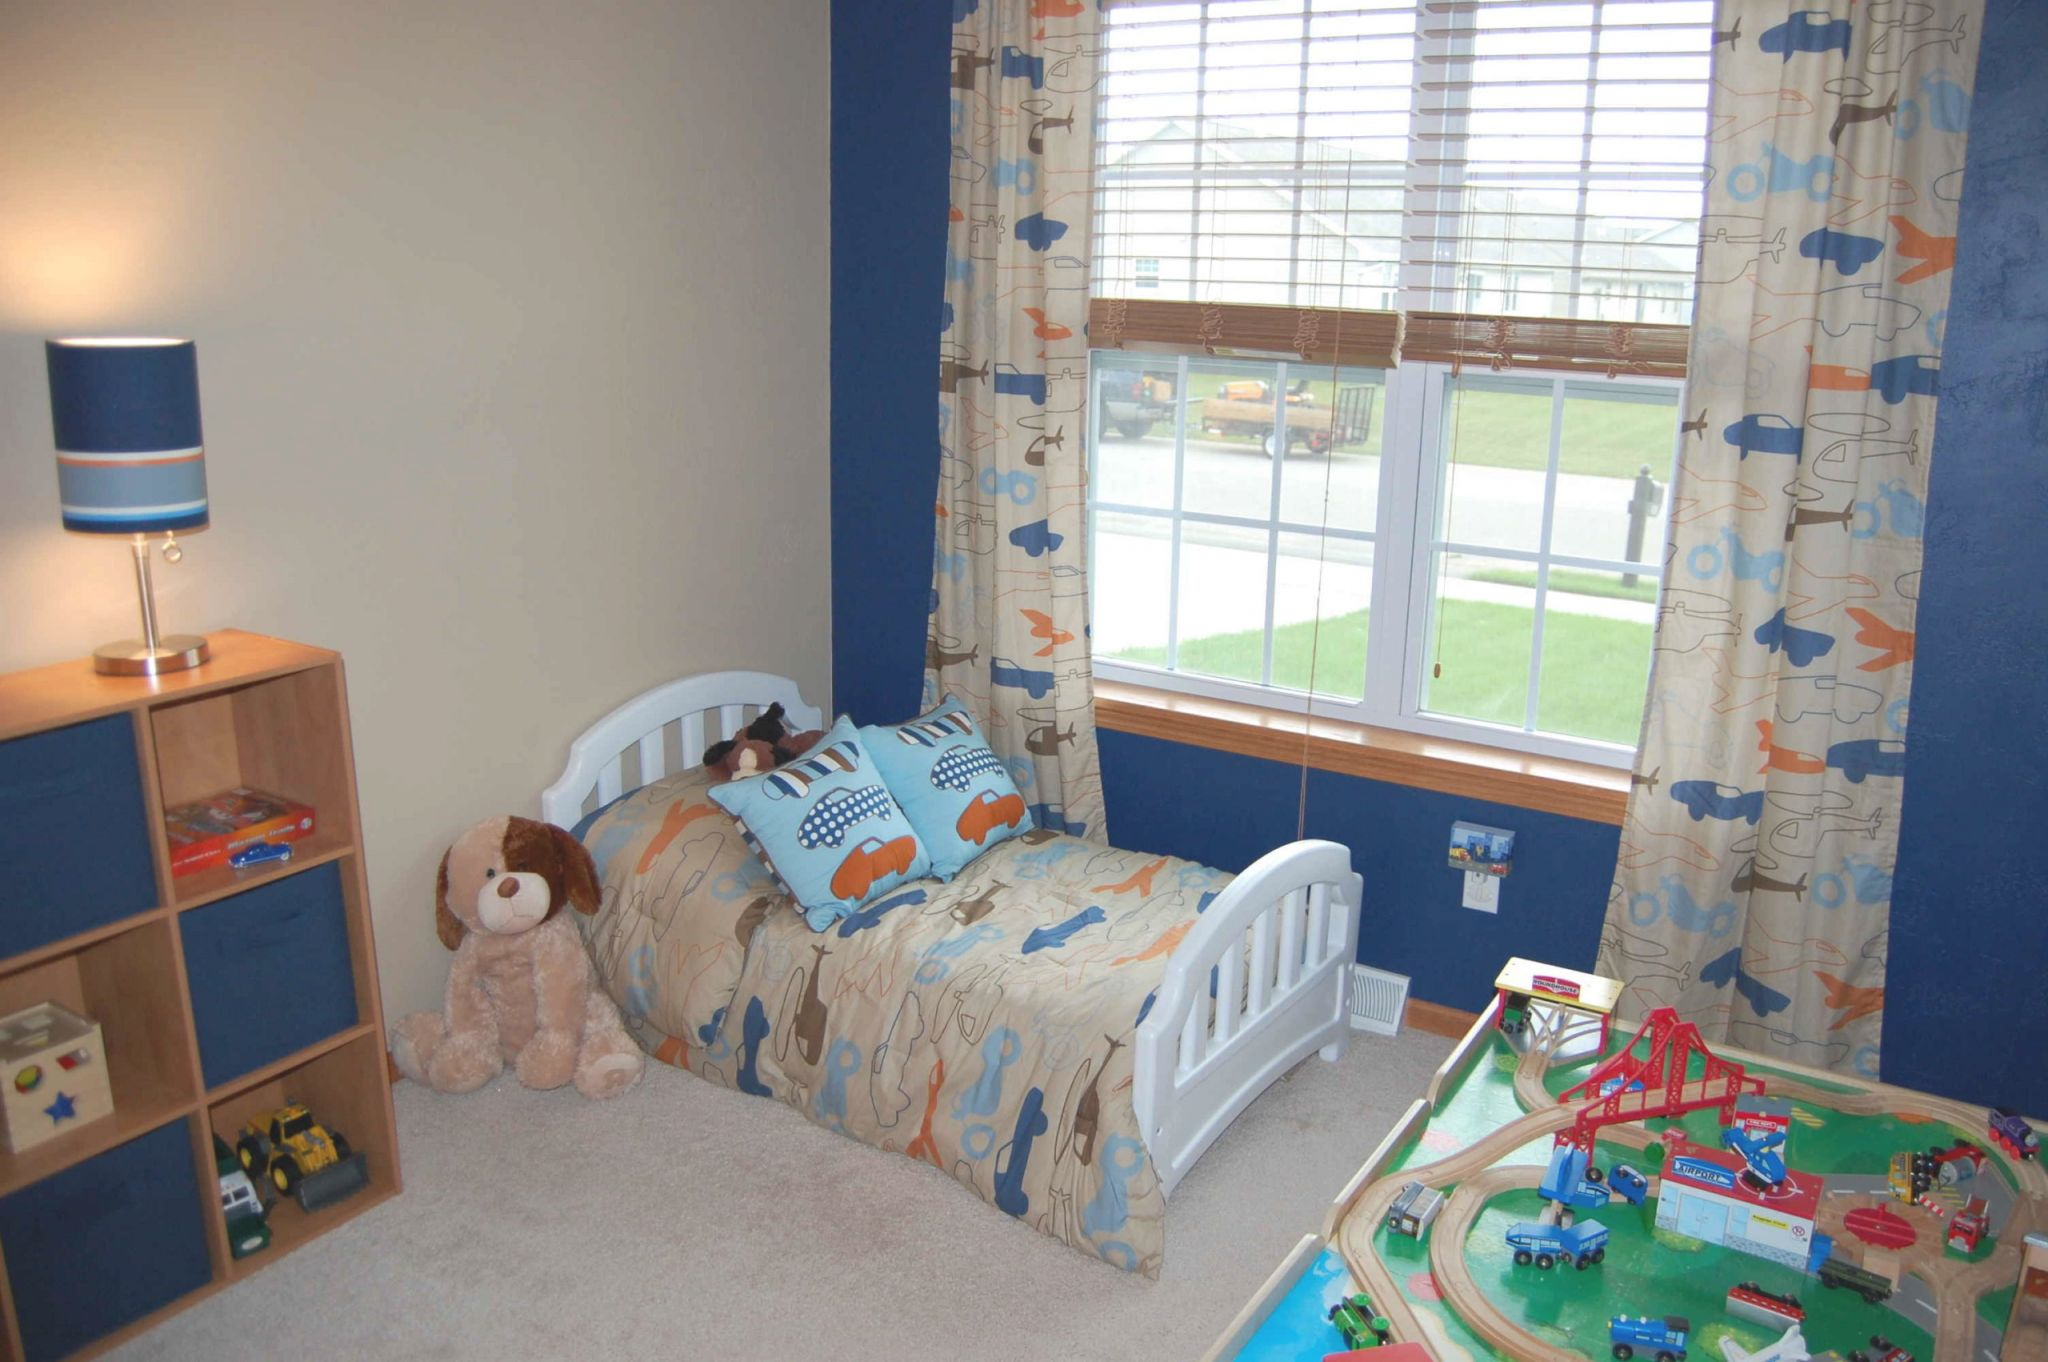 Bedroom Ideas Simple Boy Room Kids Decorating Little Idea With Regard To Awesome Little Boy Bedroom Decorating Ideas Awesome Decors